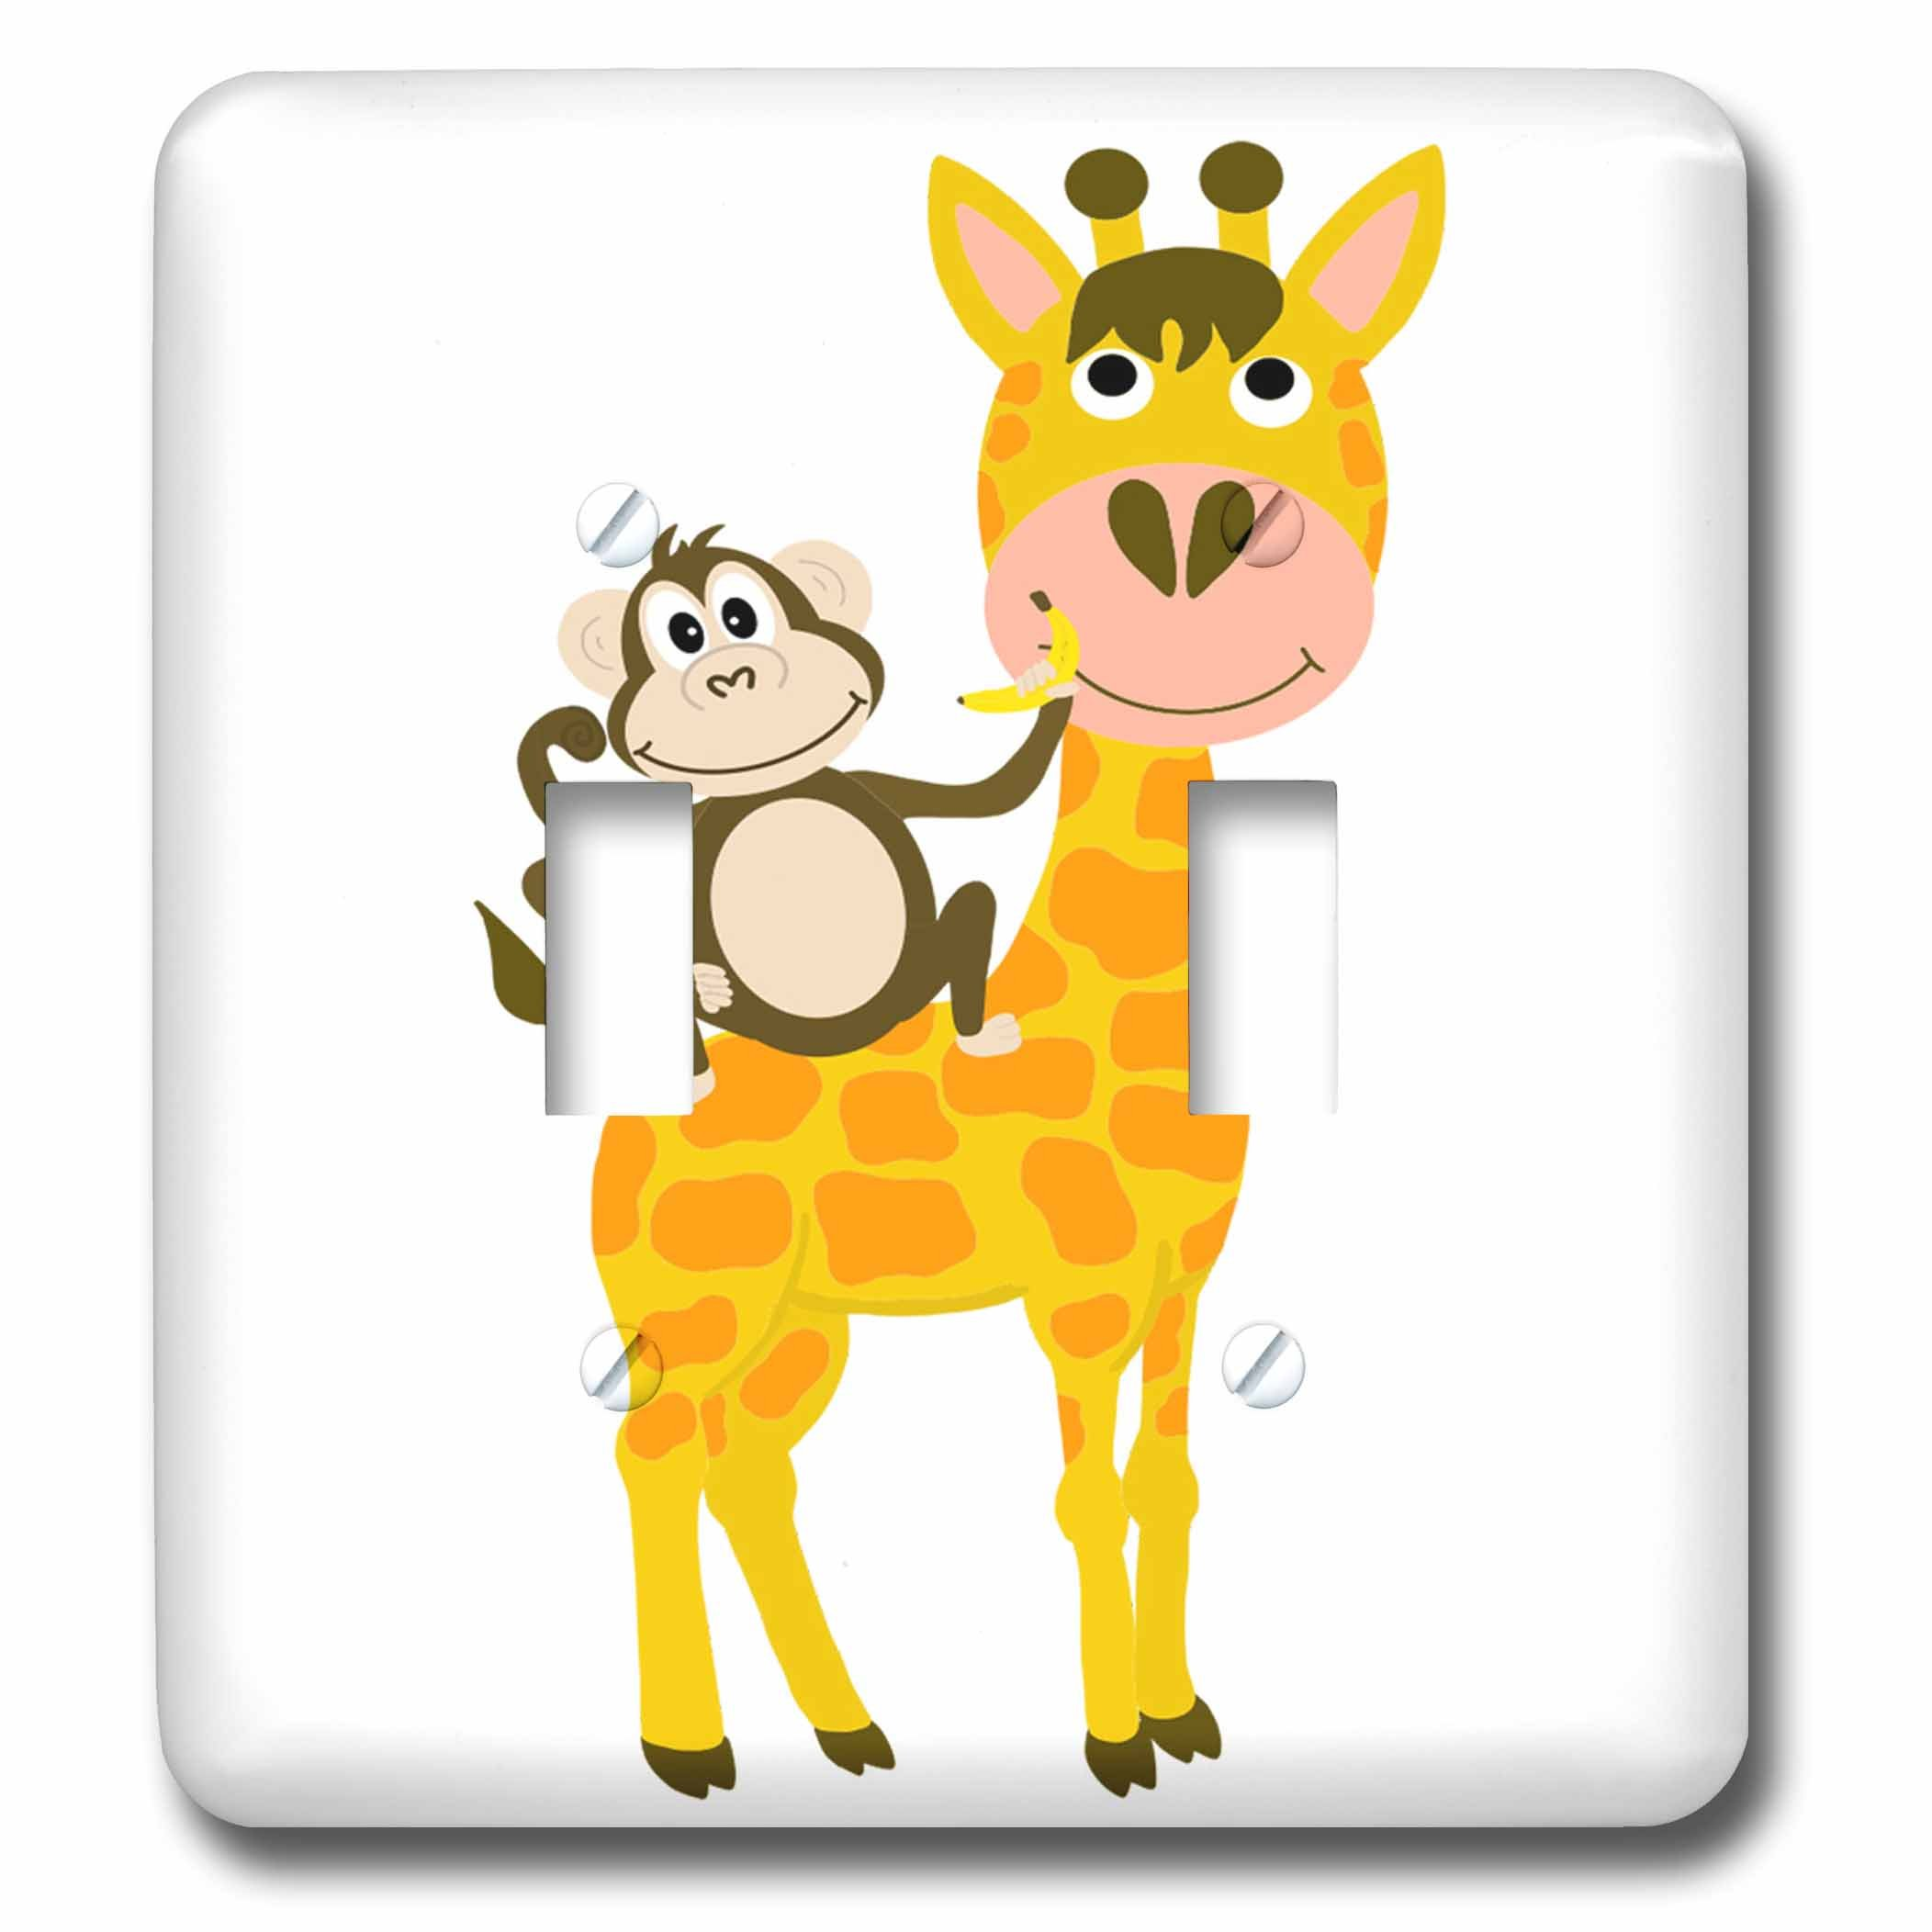 3dRose AllSouthernDesignTees - Zoo Animals - Cool fun monkey holding a banana and riding a funny giraffe - Light Switch Covers - double toggle switch (lsp_280218_2)